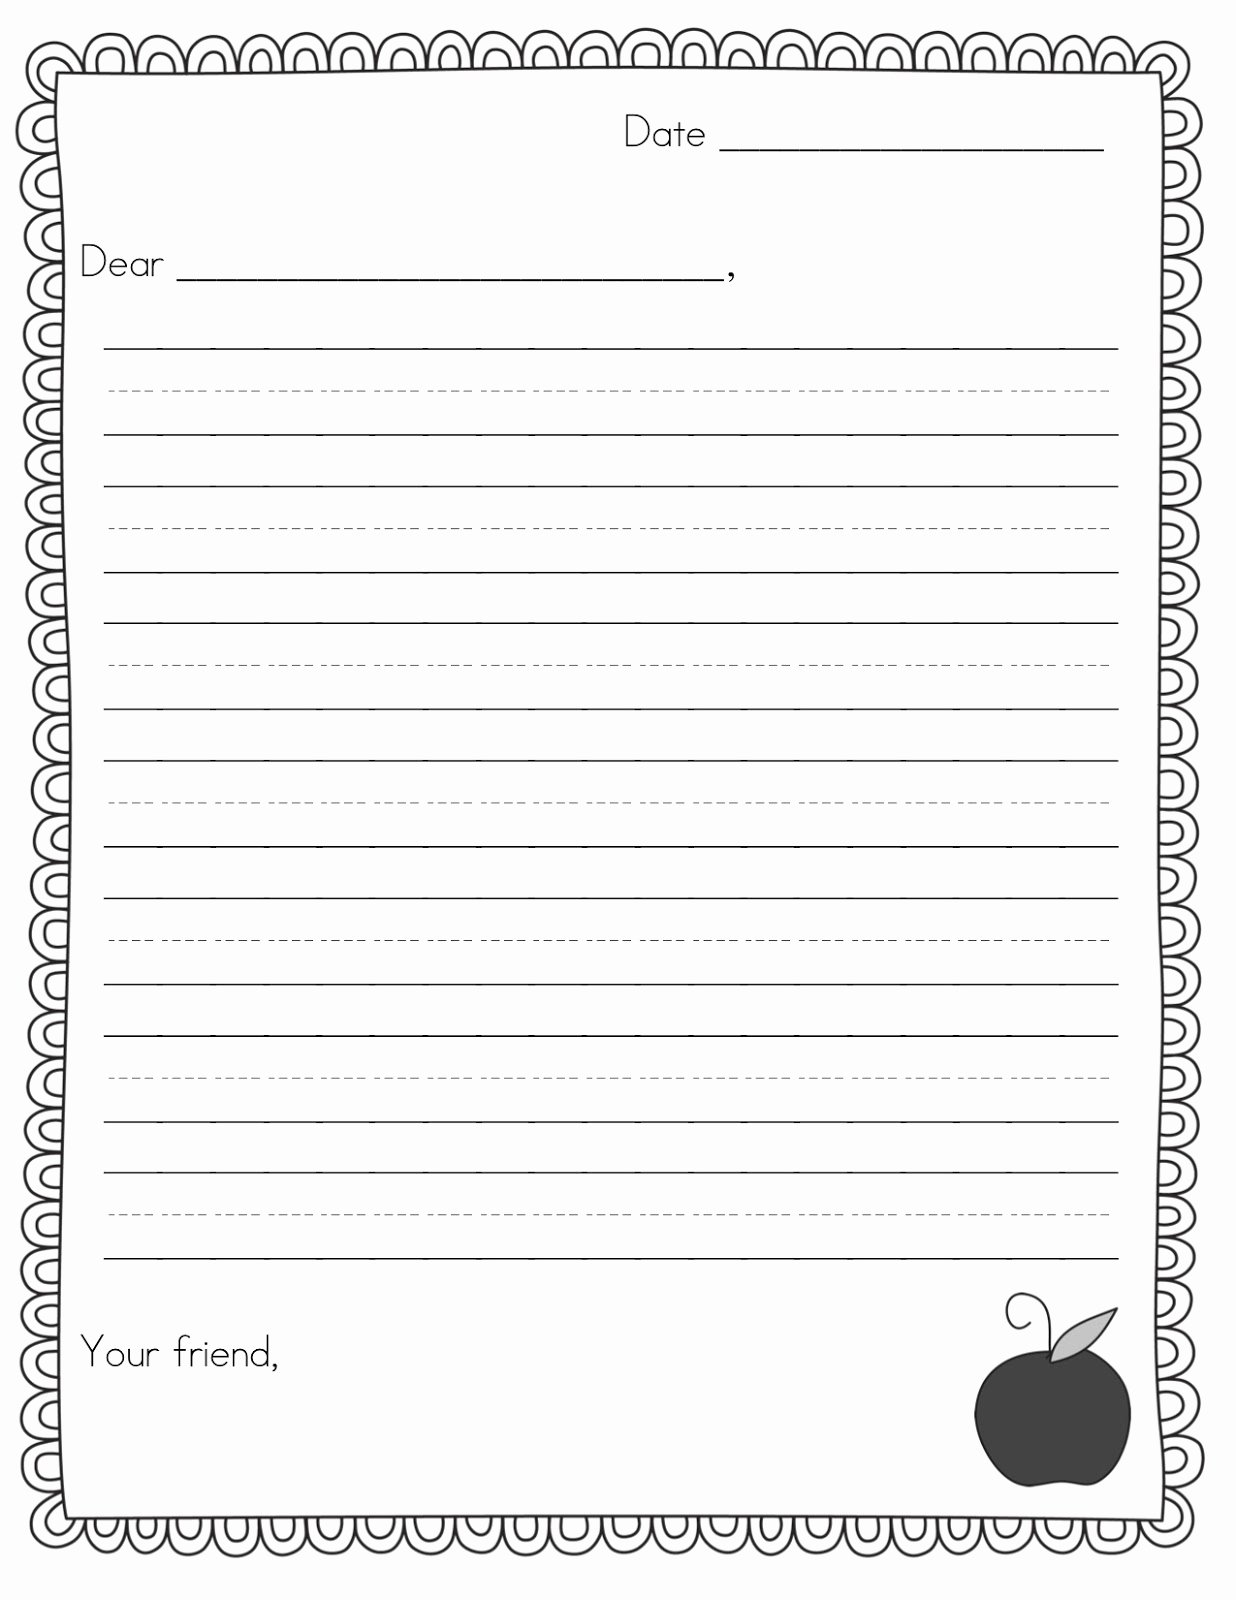 Pen Pal Letter Template Elegant Pen Pal News Friendly Letter Freebie Teacher Idea Factory